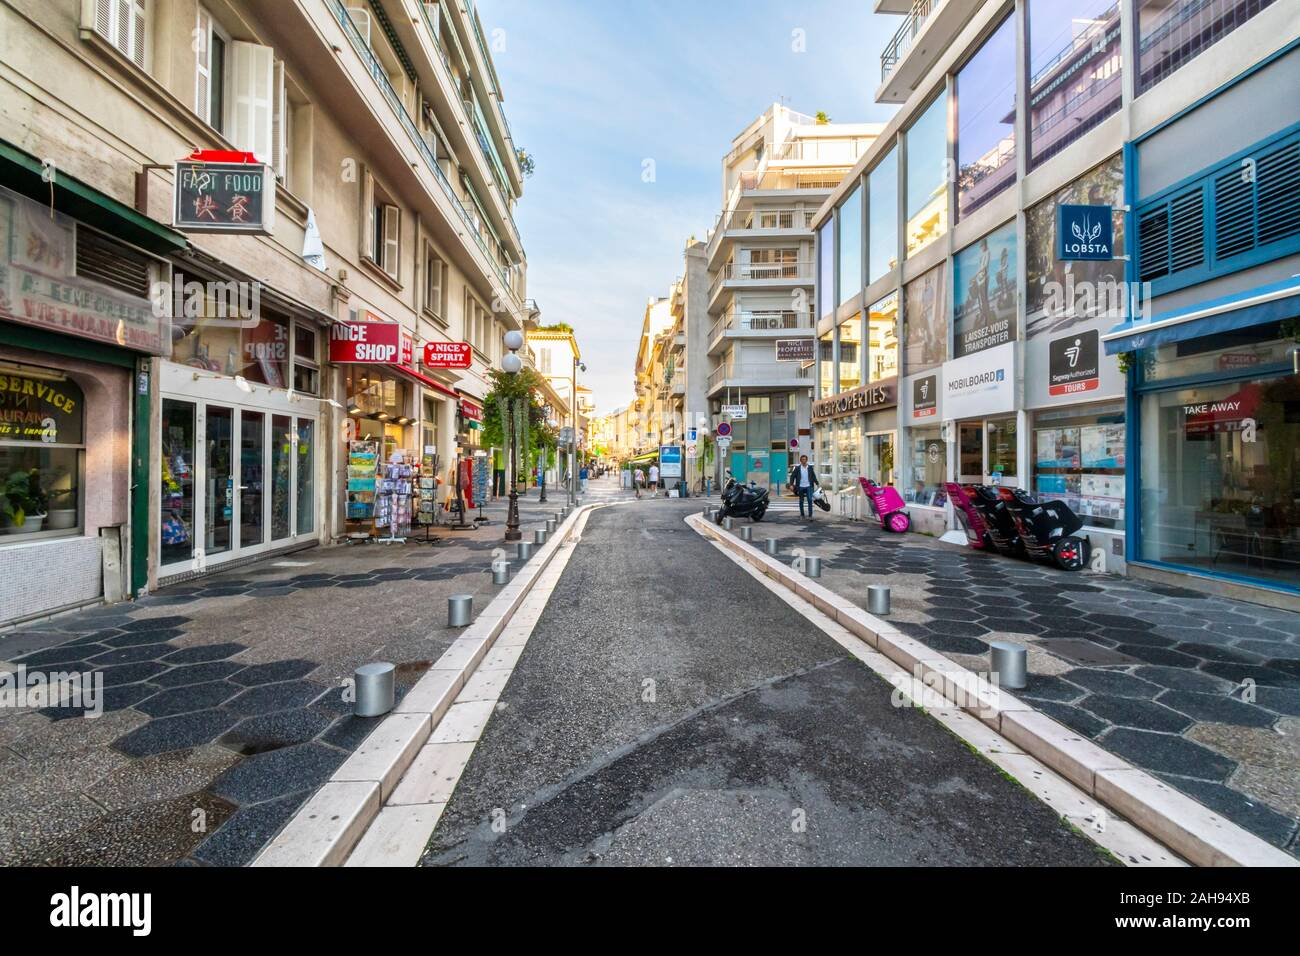 A lone pedestrian walks down side street early on a weekday morning in the city of Nice, France, on the French Riviera. Stock Photo